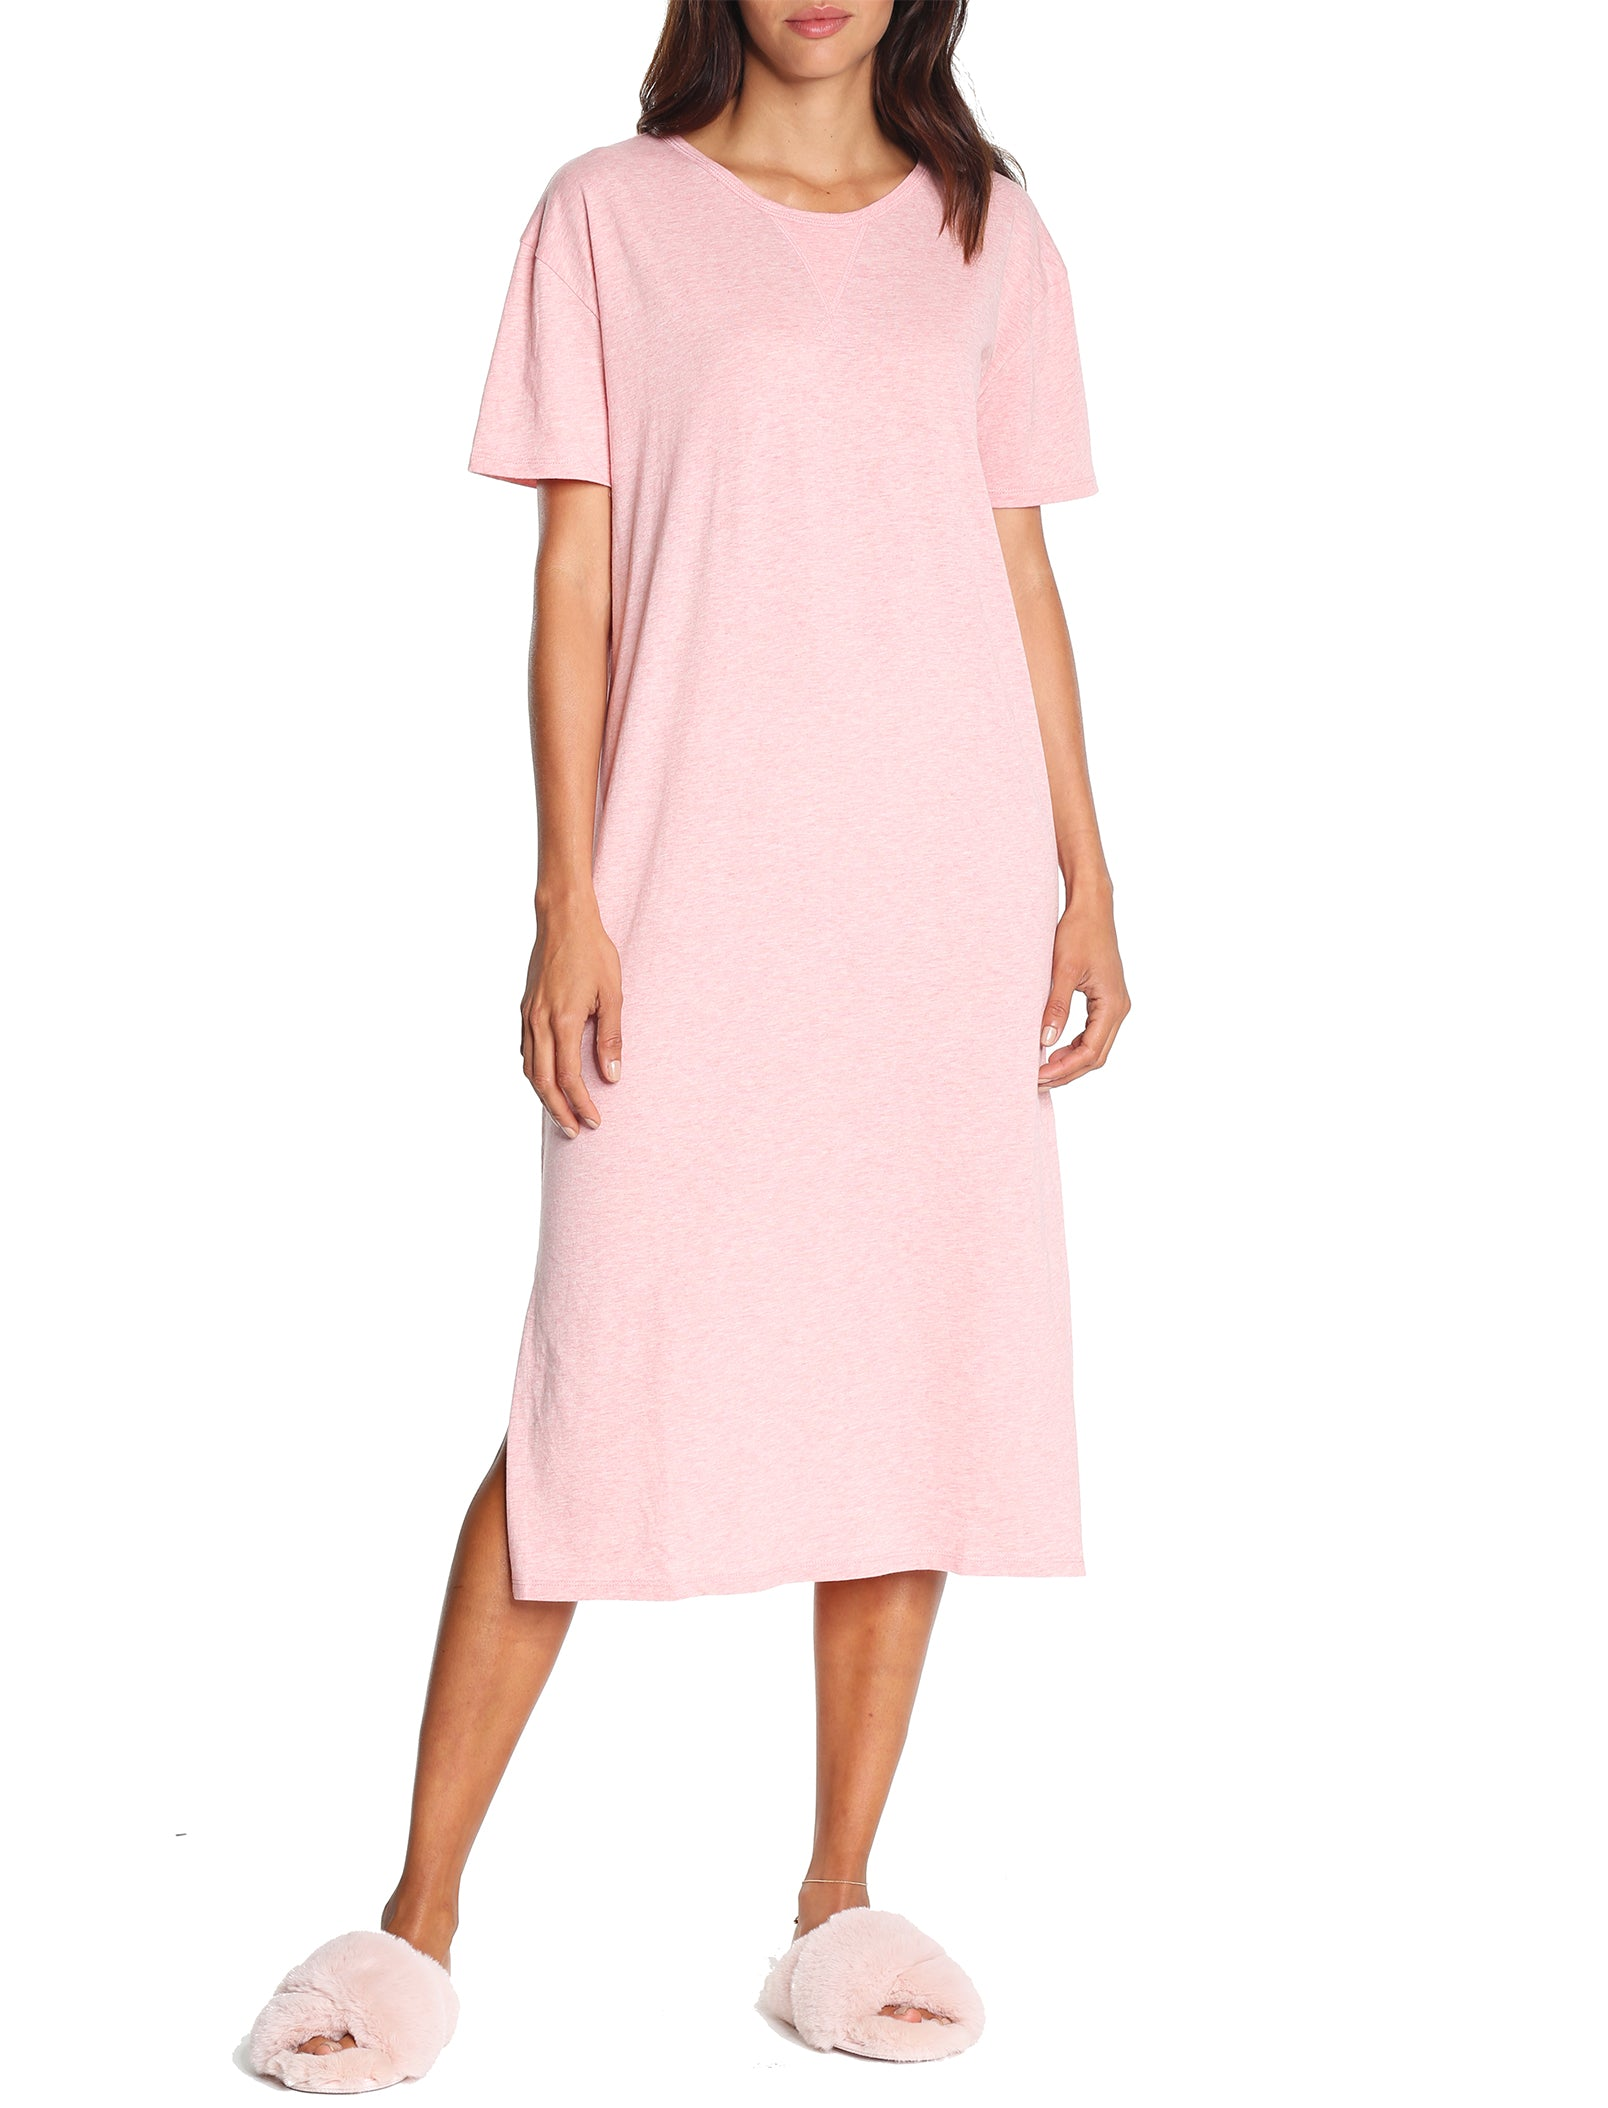 Organic Cotton Knit Nightgown in Pink